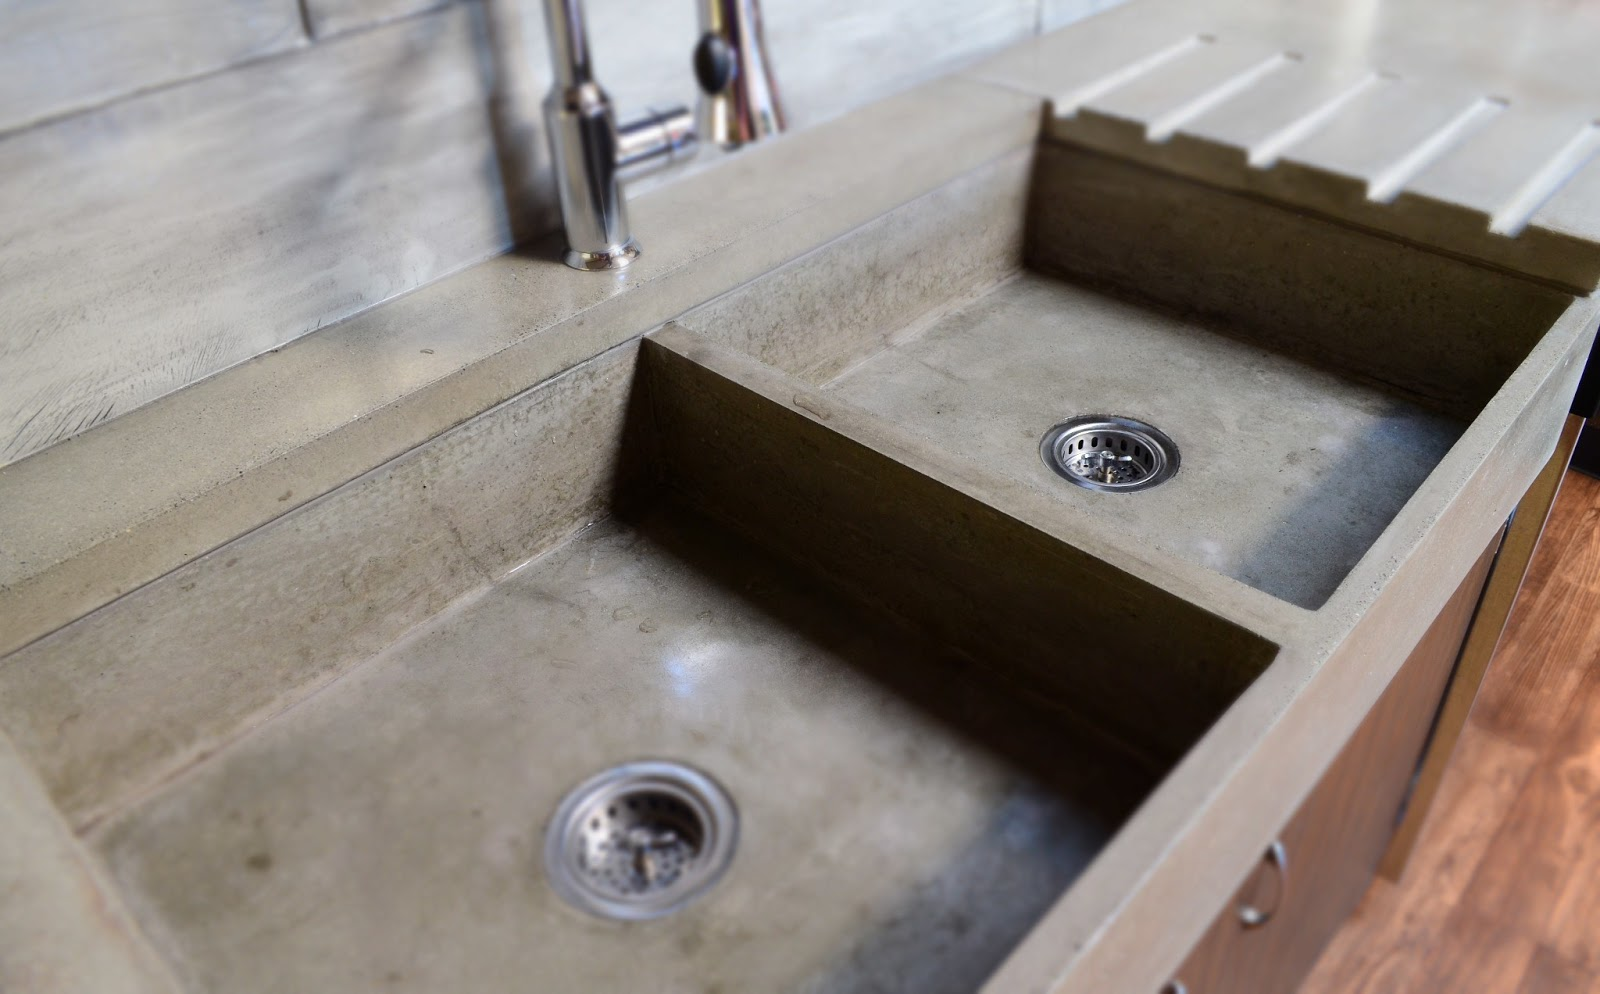 Countertop Kitchen Sink : This modern, double farm-style, apron concrete sink is massive in size ...